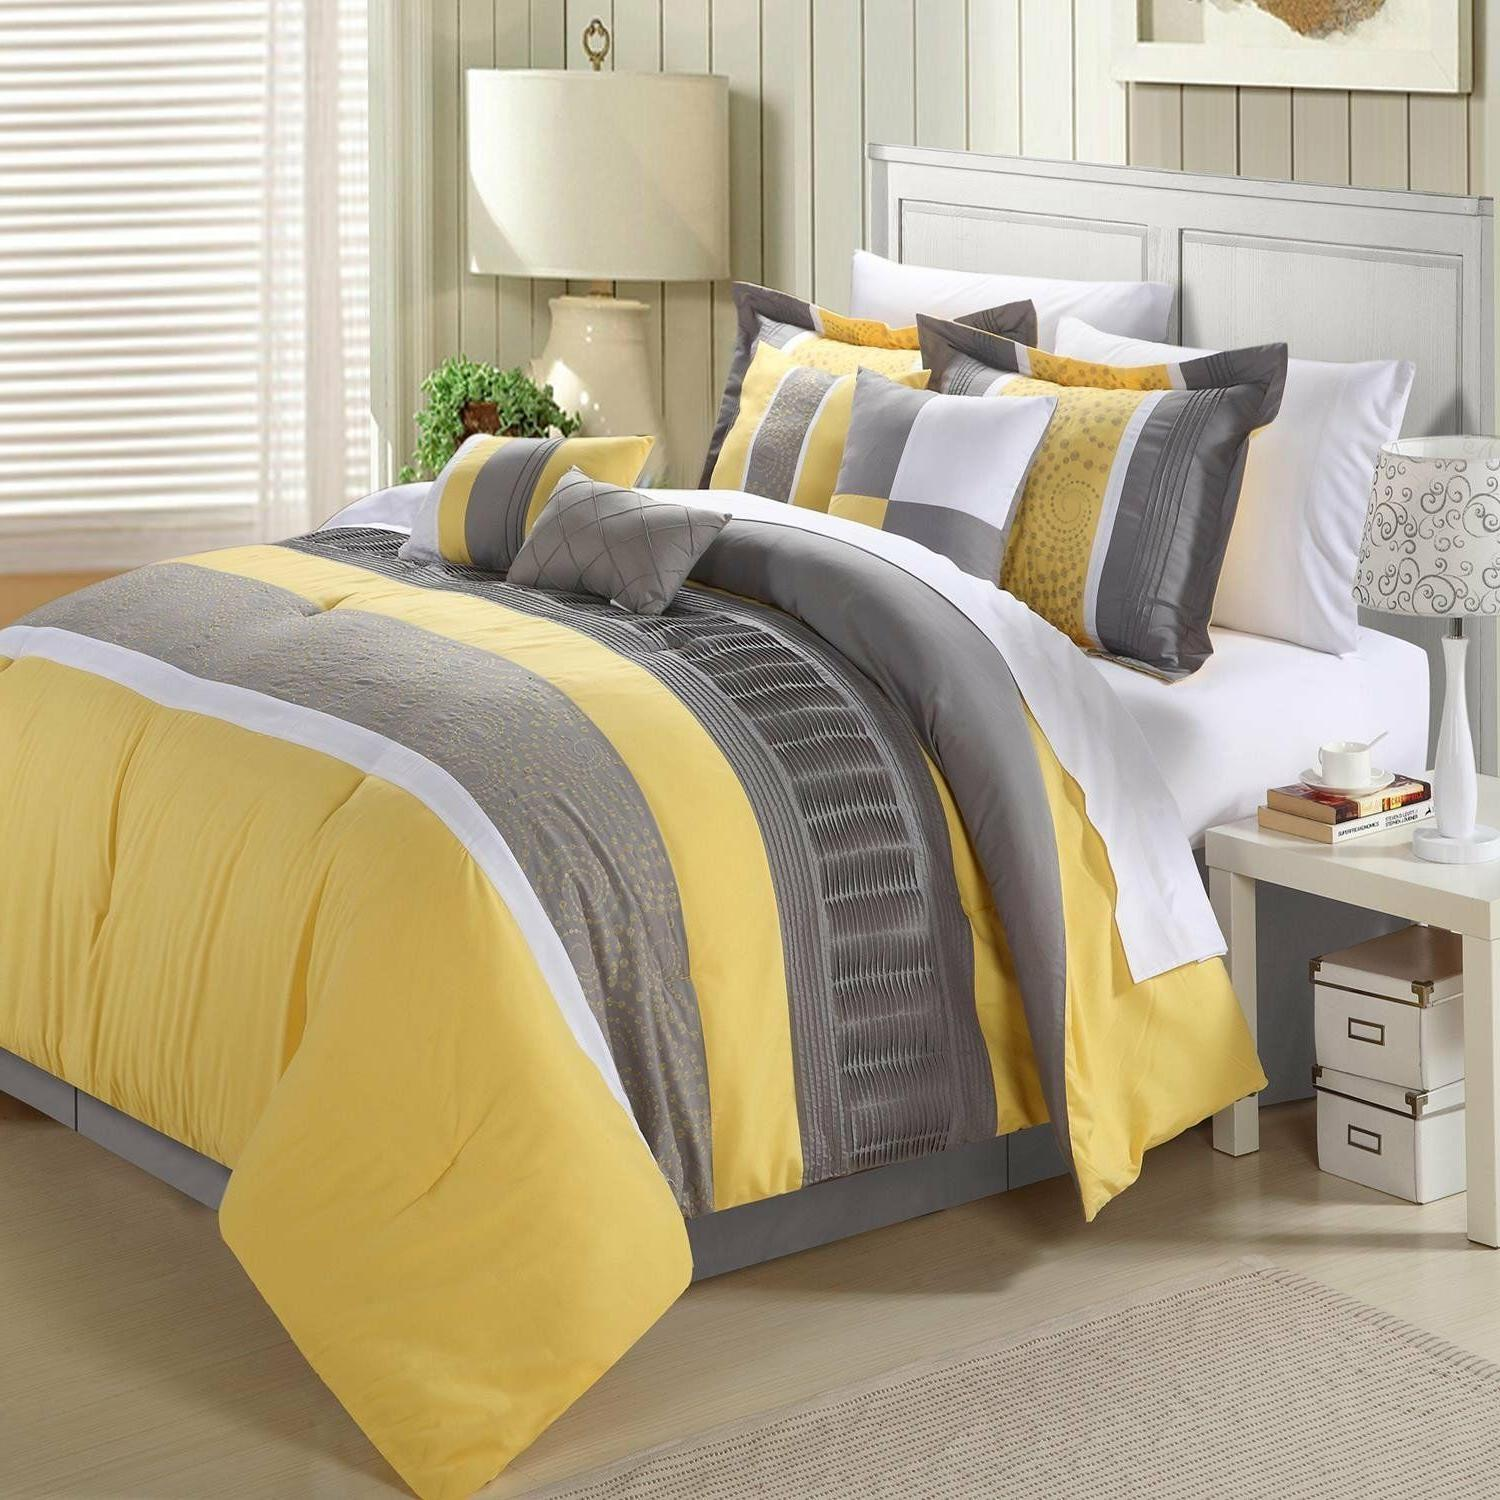 Chic Comforter Set, Floral Yellow